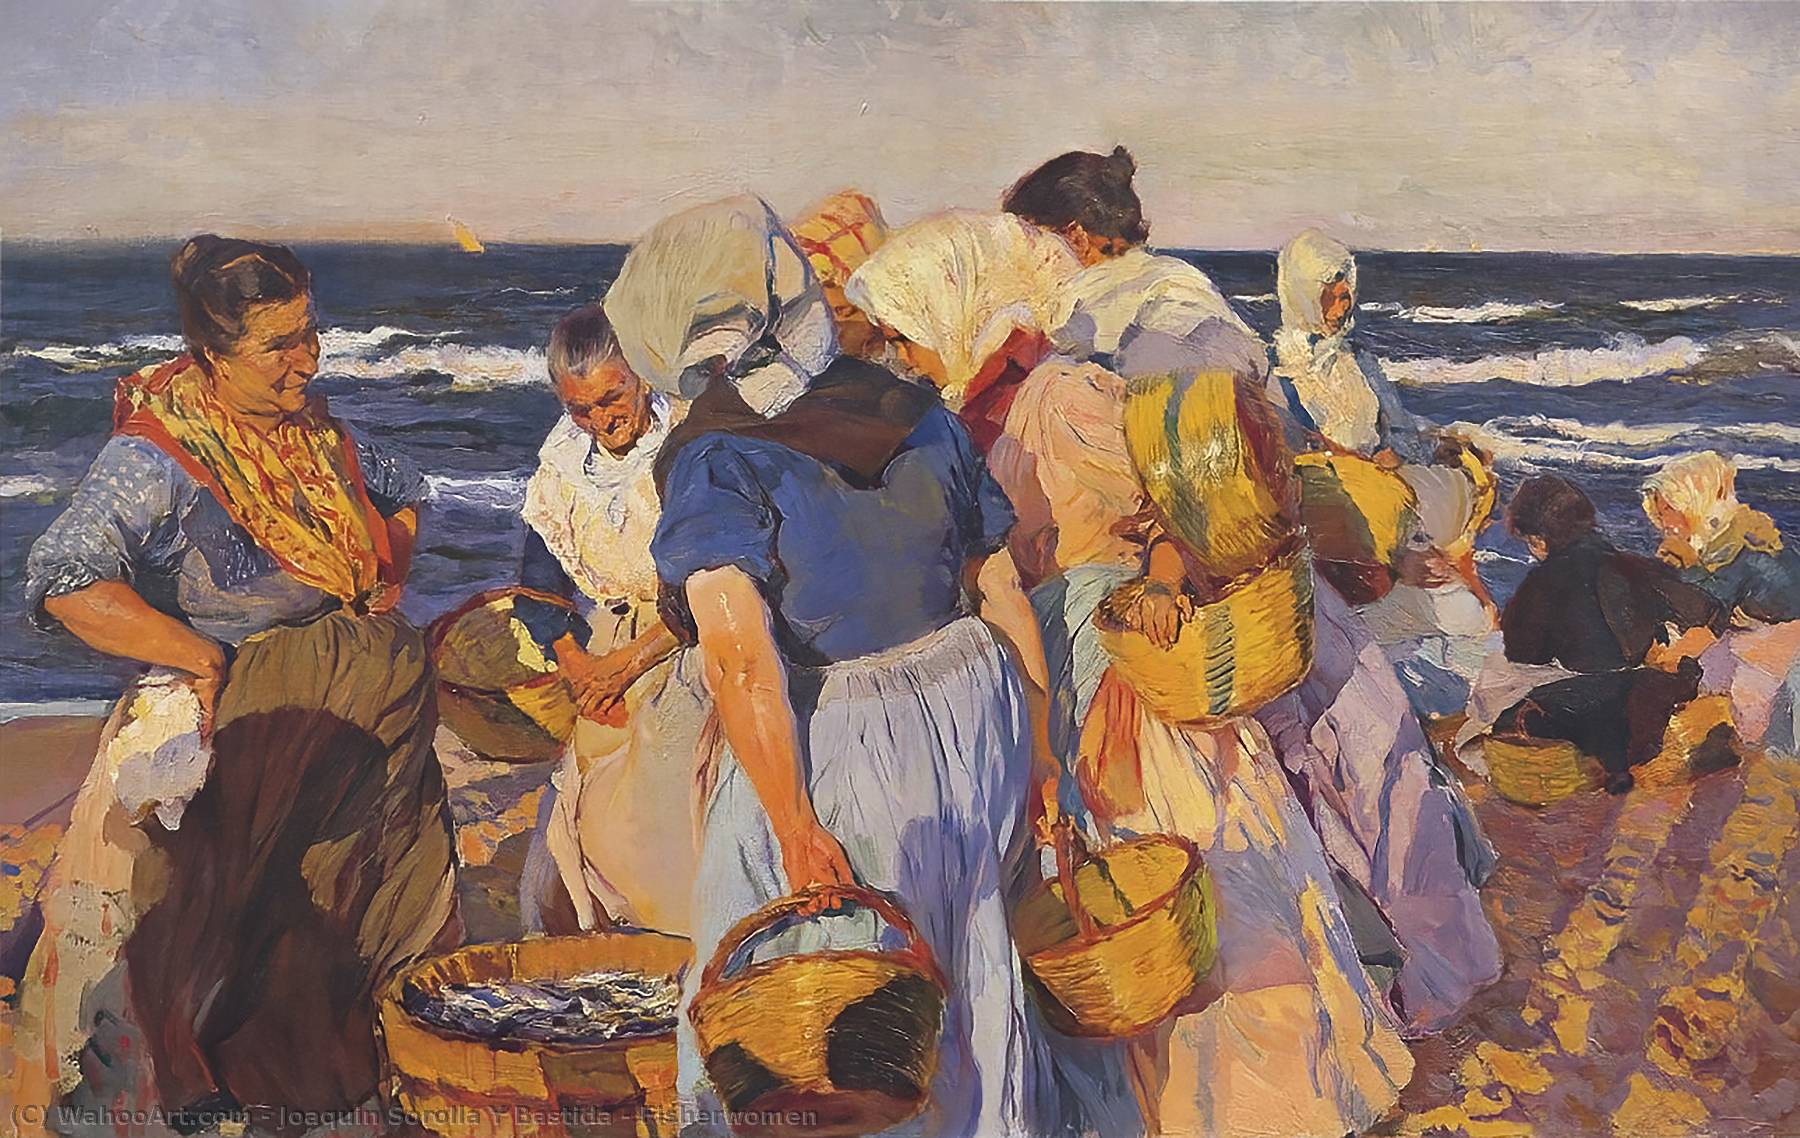 Fisherwomen, Oil On Canvas by Joaquin Sorolla Y Bastida (1863-1923, Spain)